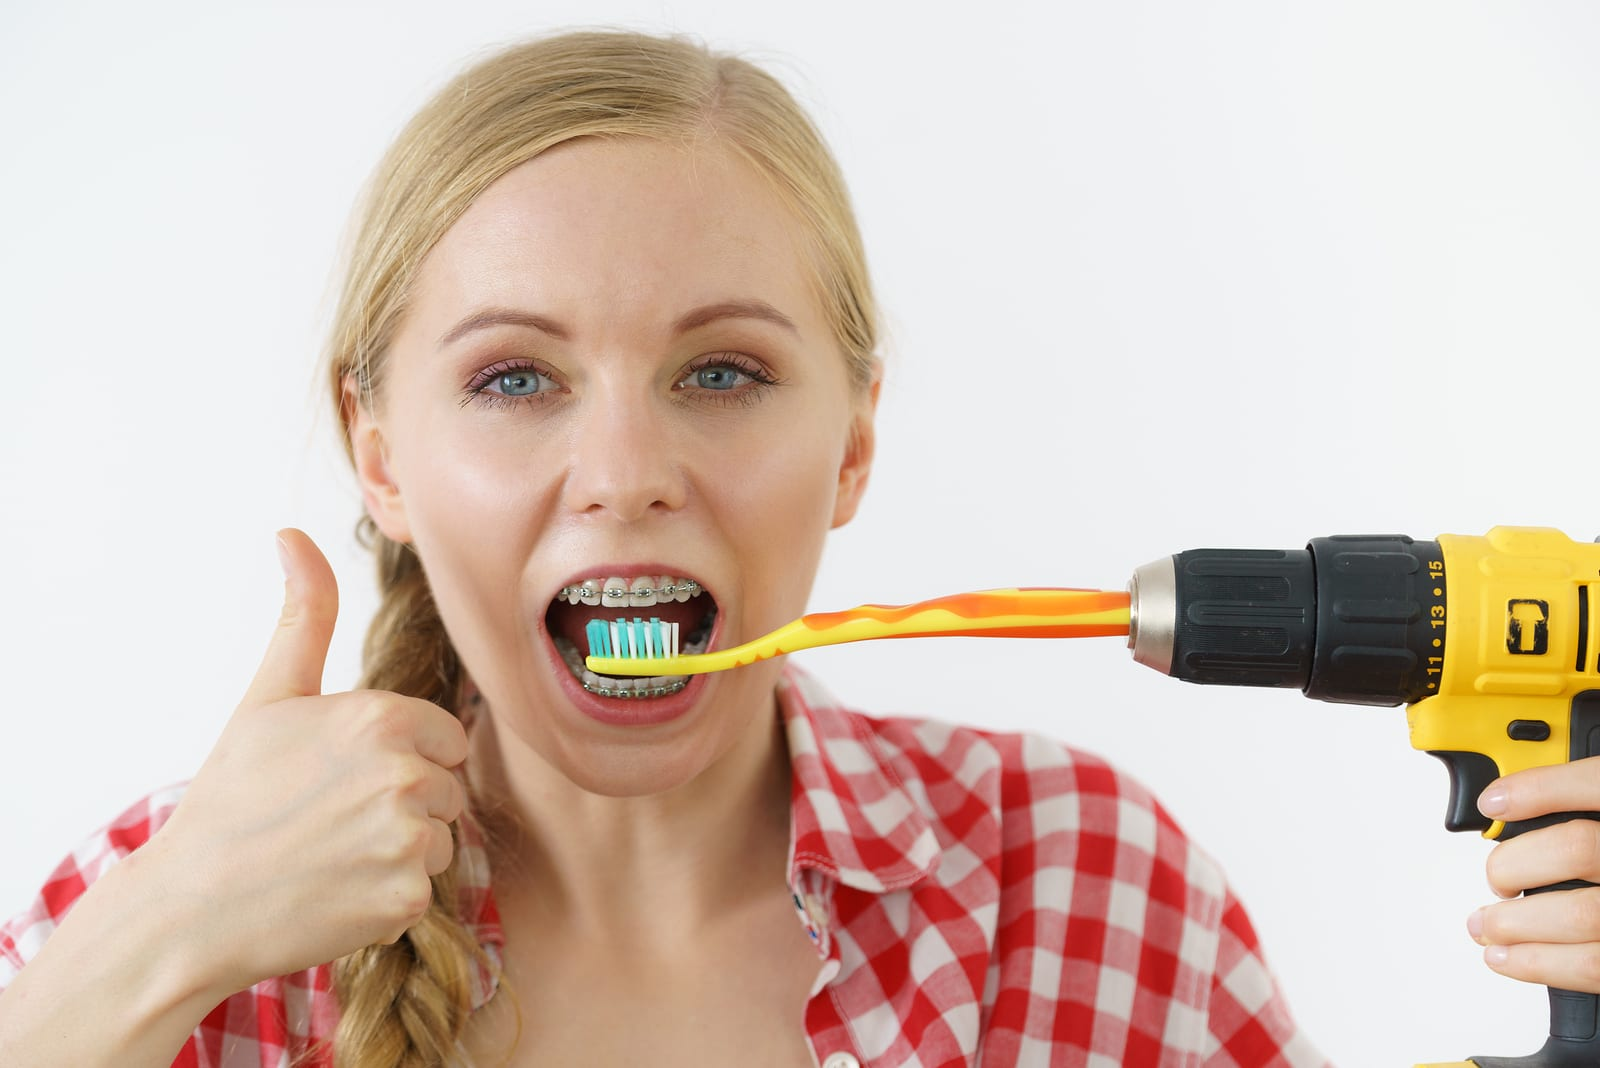 teenage girl with braces about to brush teeth with toothbrush attached to drill